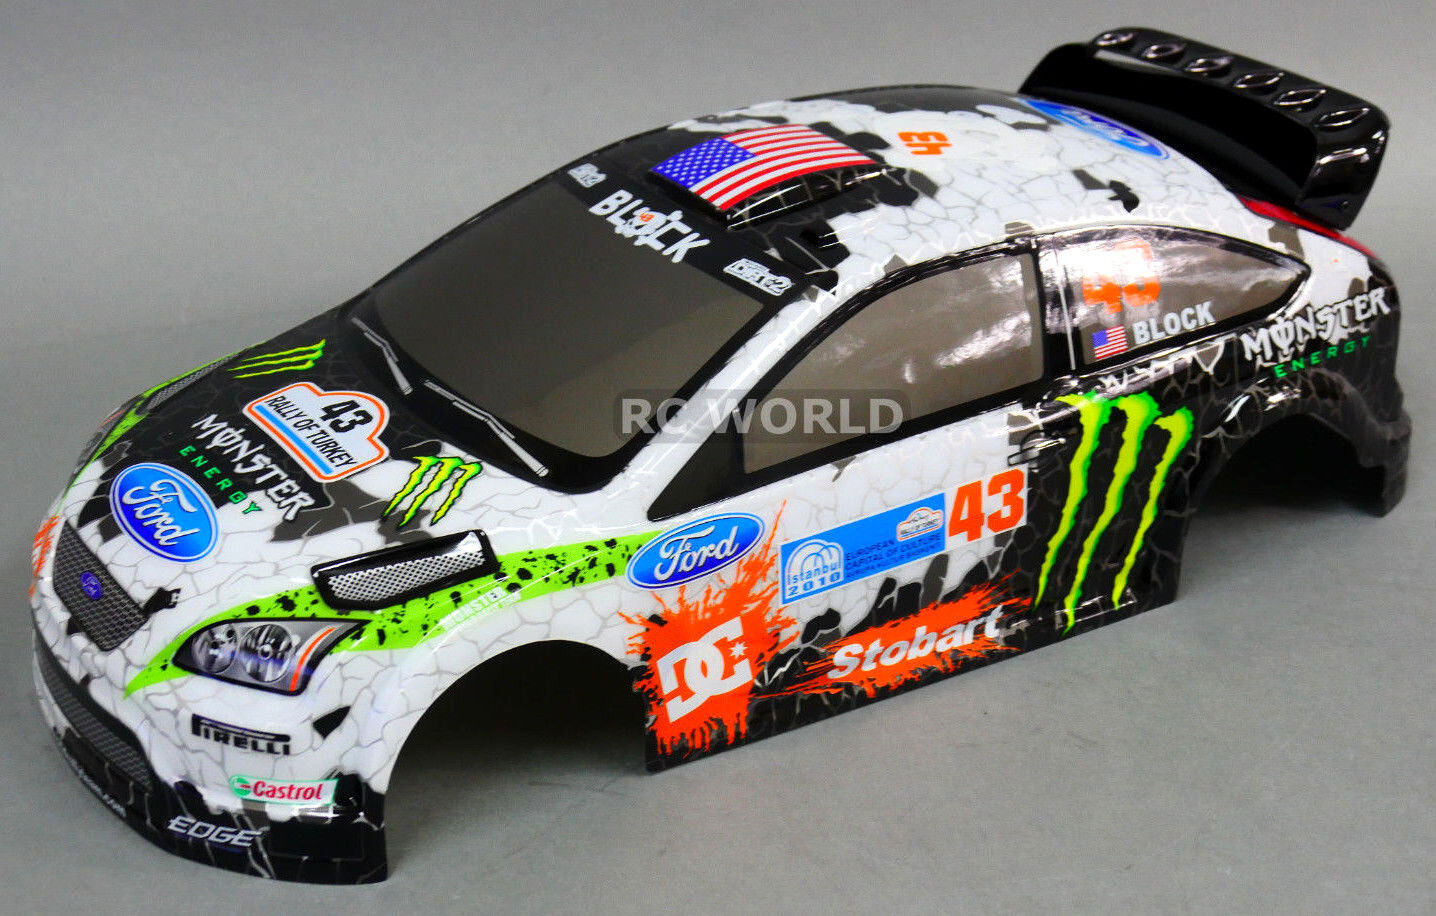 hobby grade rc trucks with 201920428169 on Buying Your First Rc Car Should I Buy Nitro Or Electric moreover Extreme Xgx 3 Buggy 2 together with 192319186233 furthermore Extreme Xgx 3 Buggy 2 furthermore 201920428169.